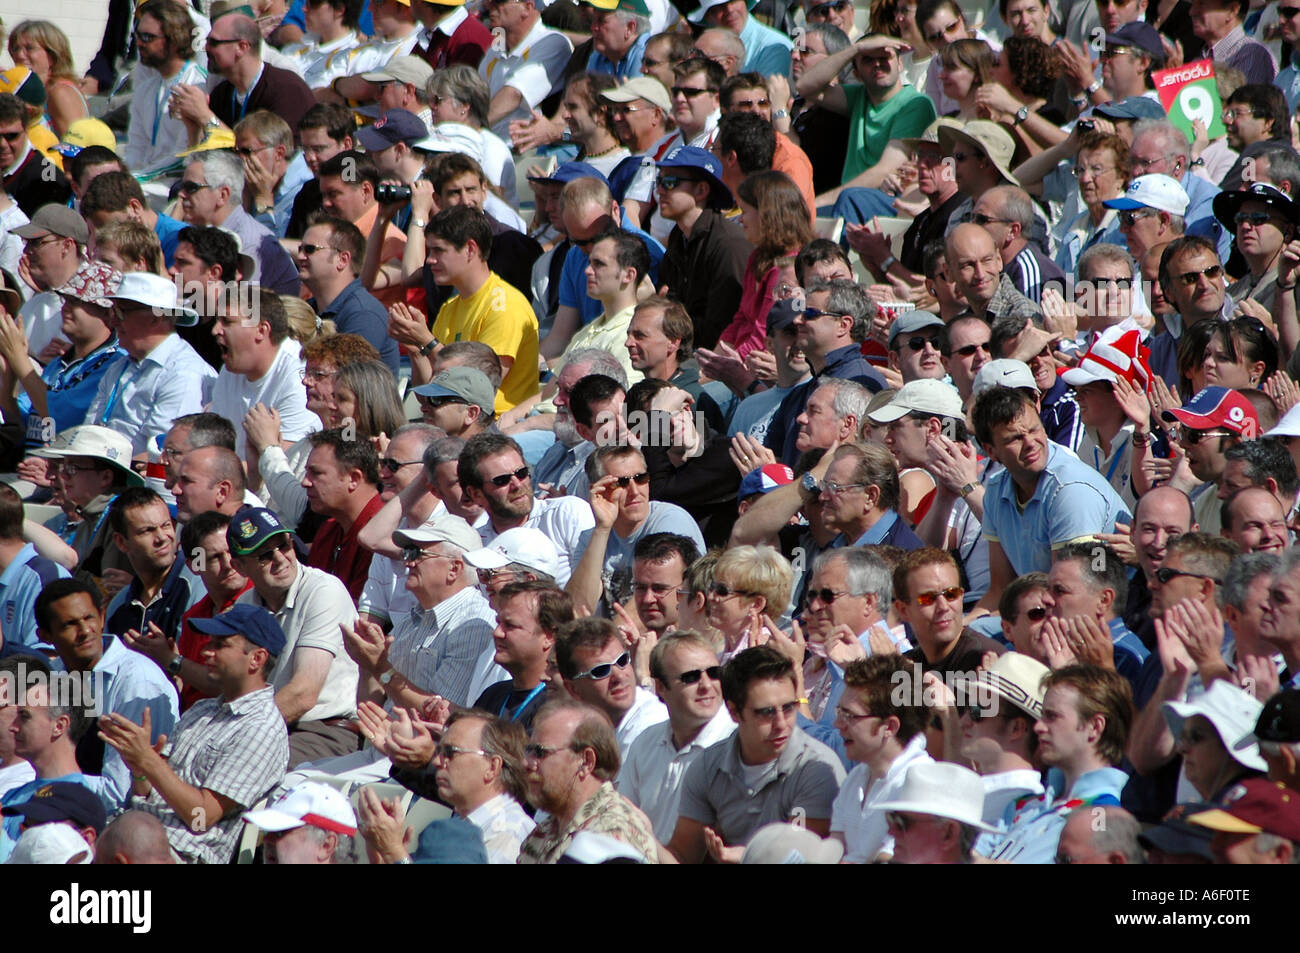 Crowd of spectators at a cricket match - Stock Image